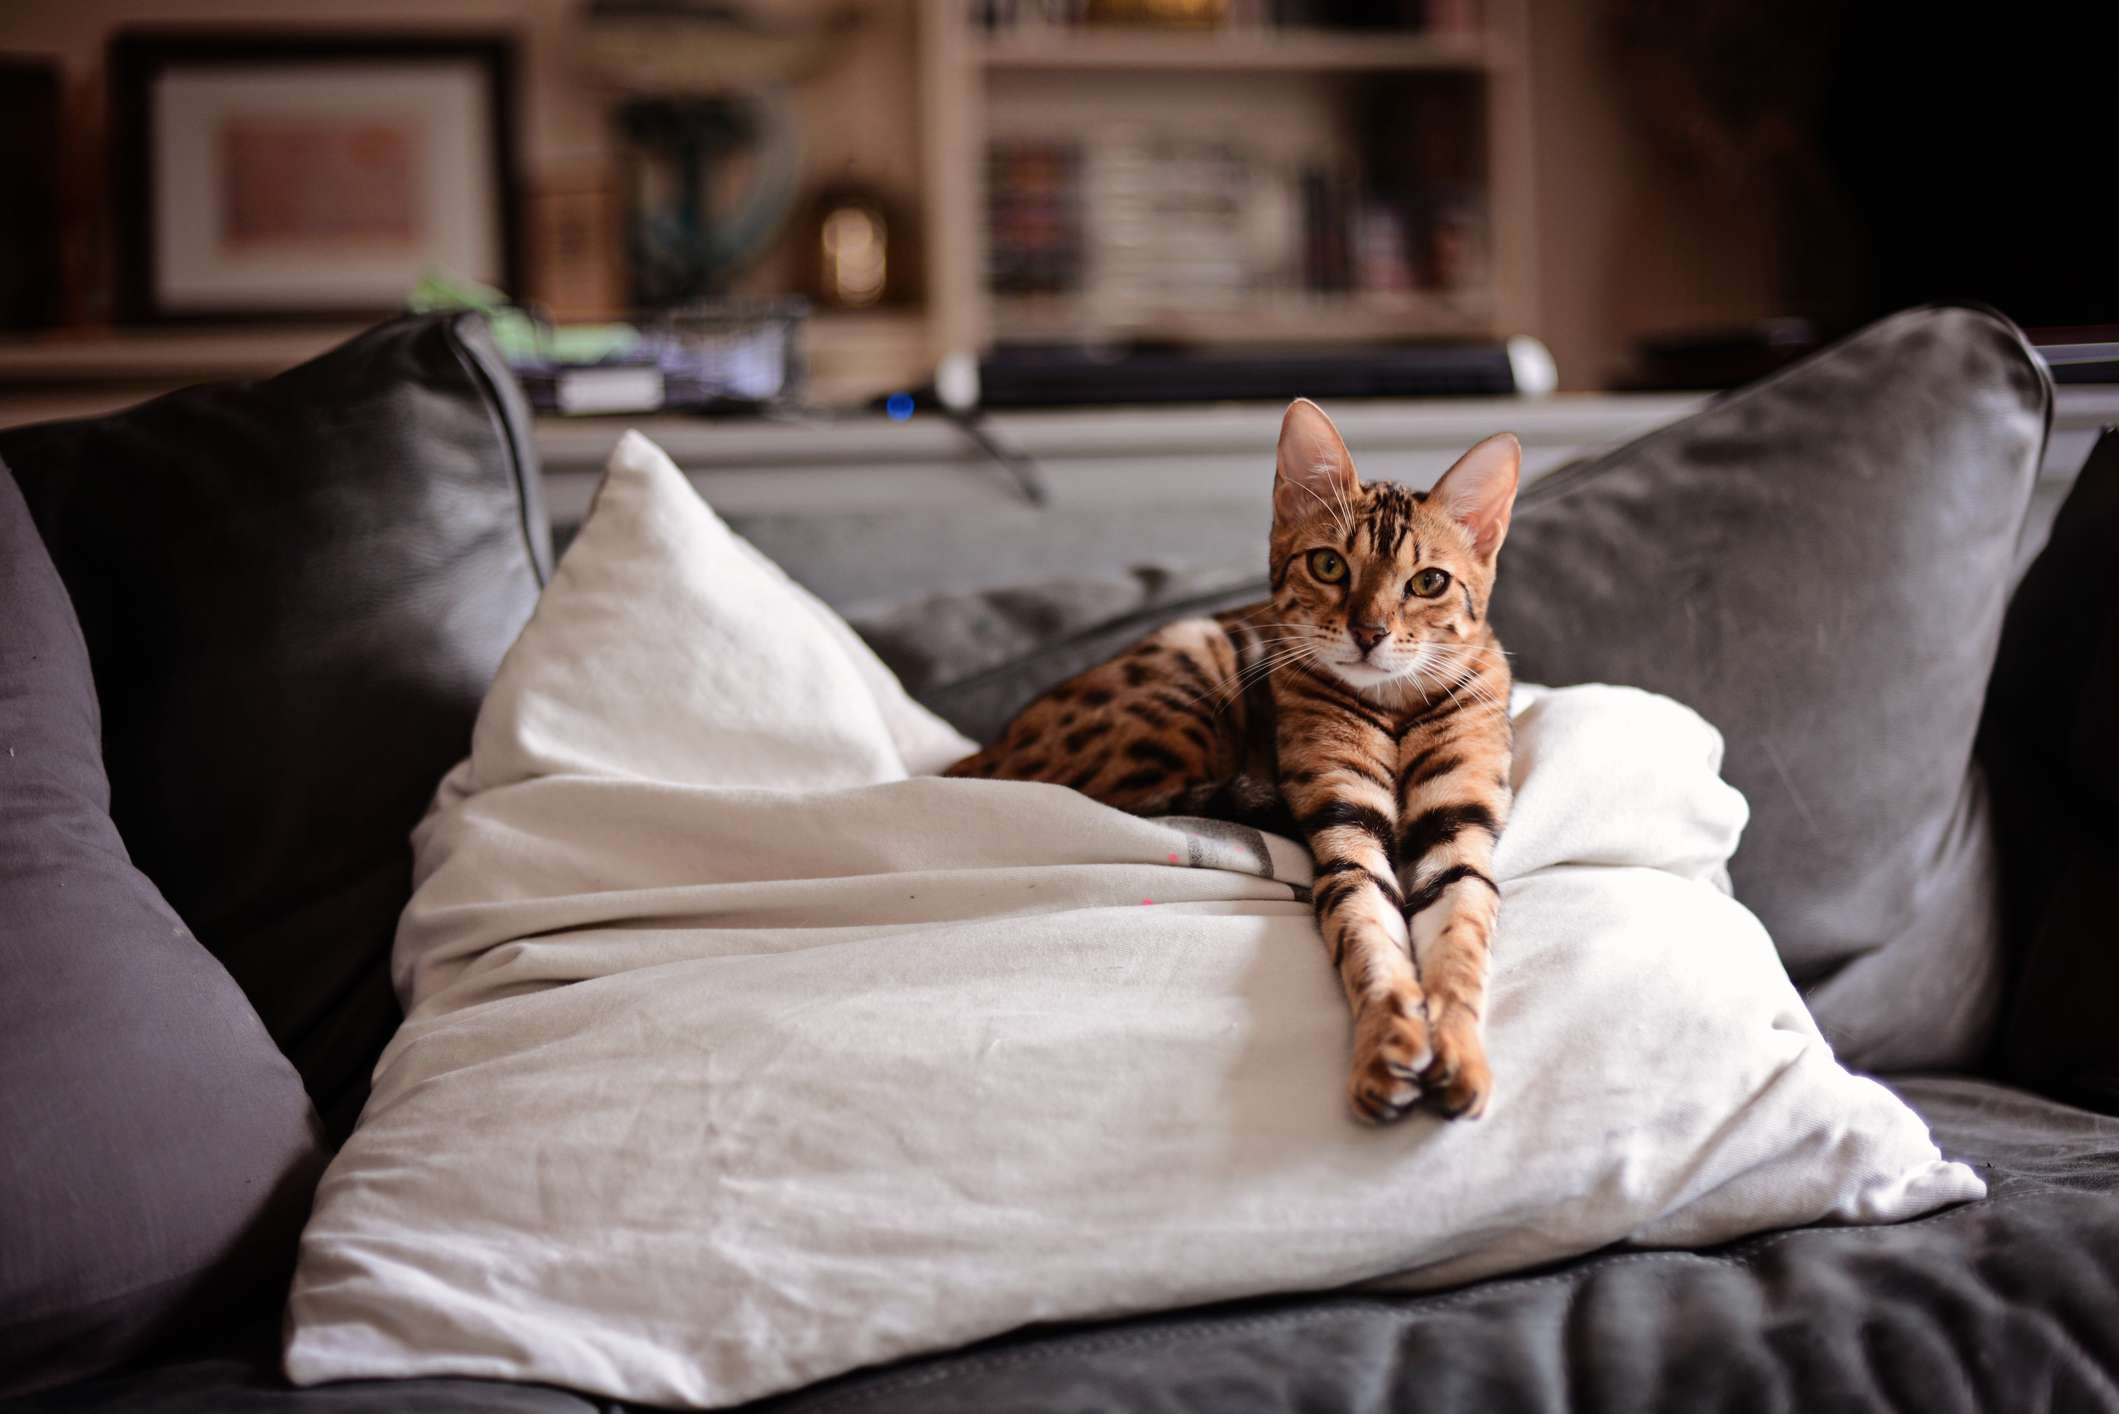 A leopard-like house cat laying on pillows.